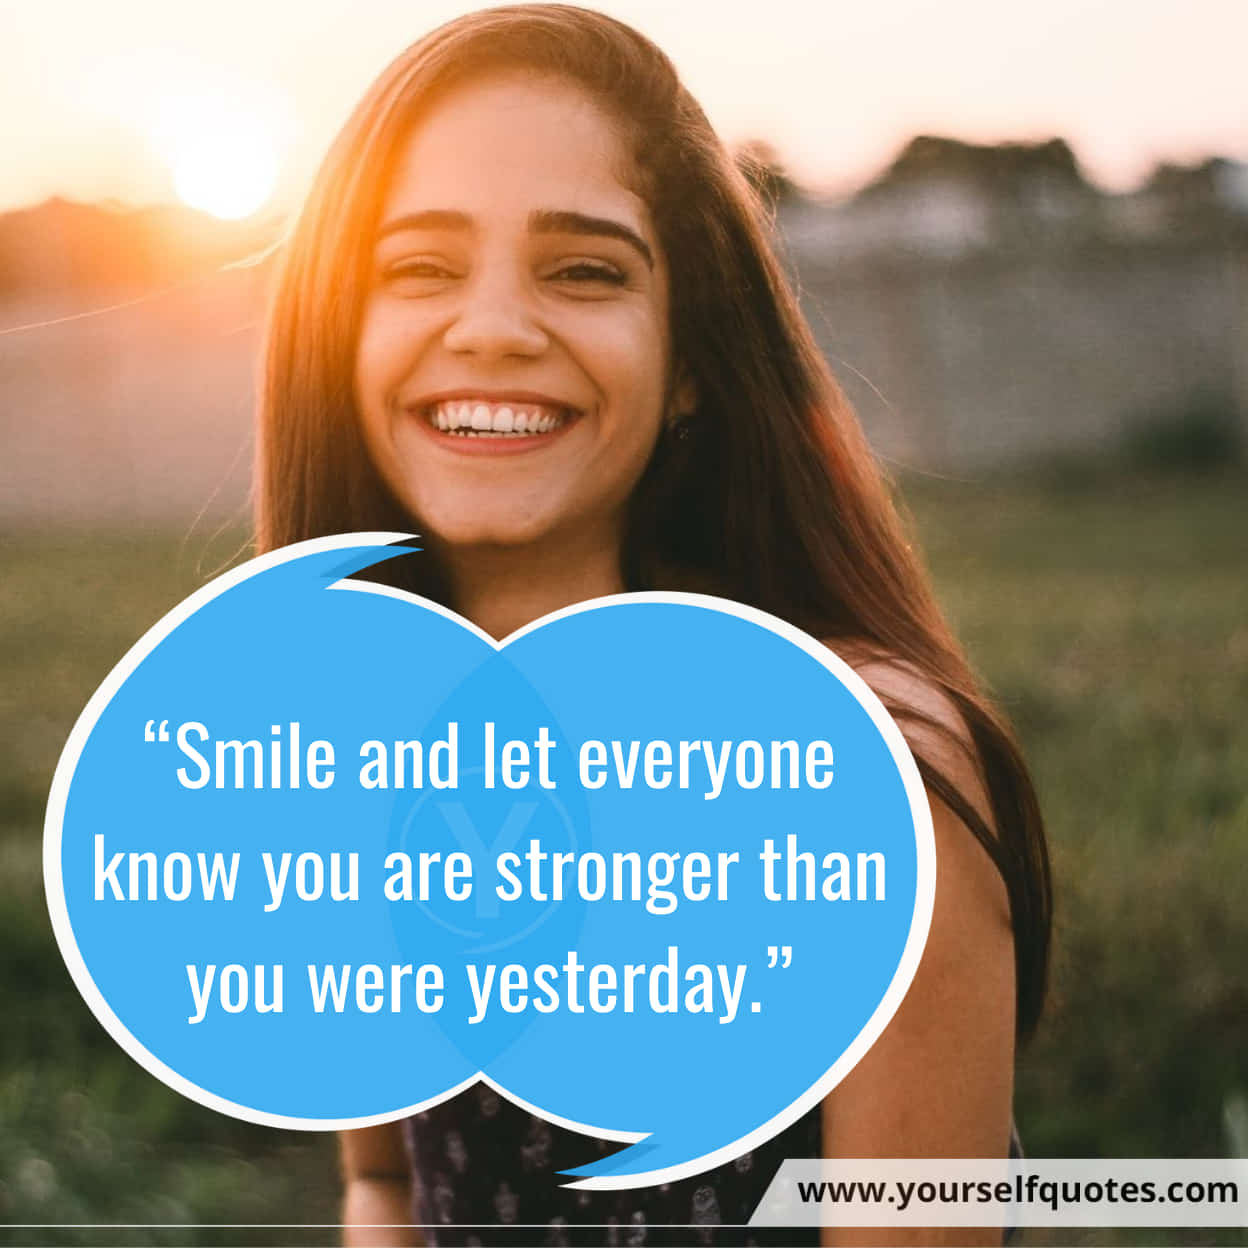 Best Quotes For Positive Vibes